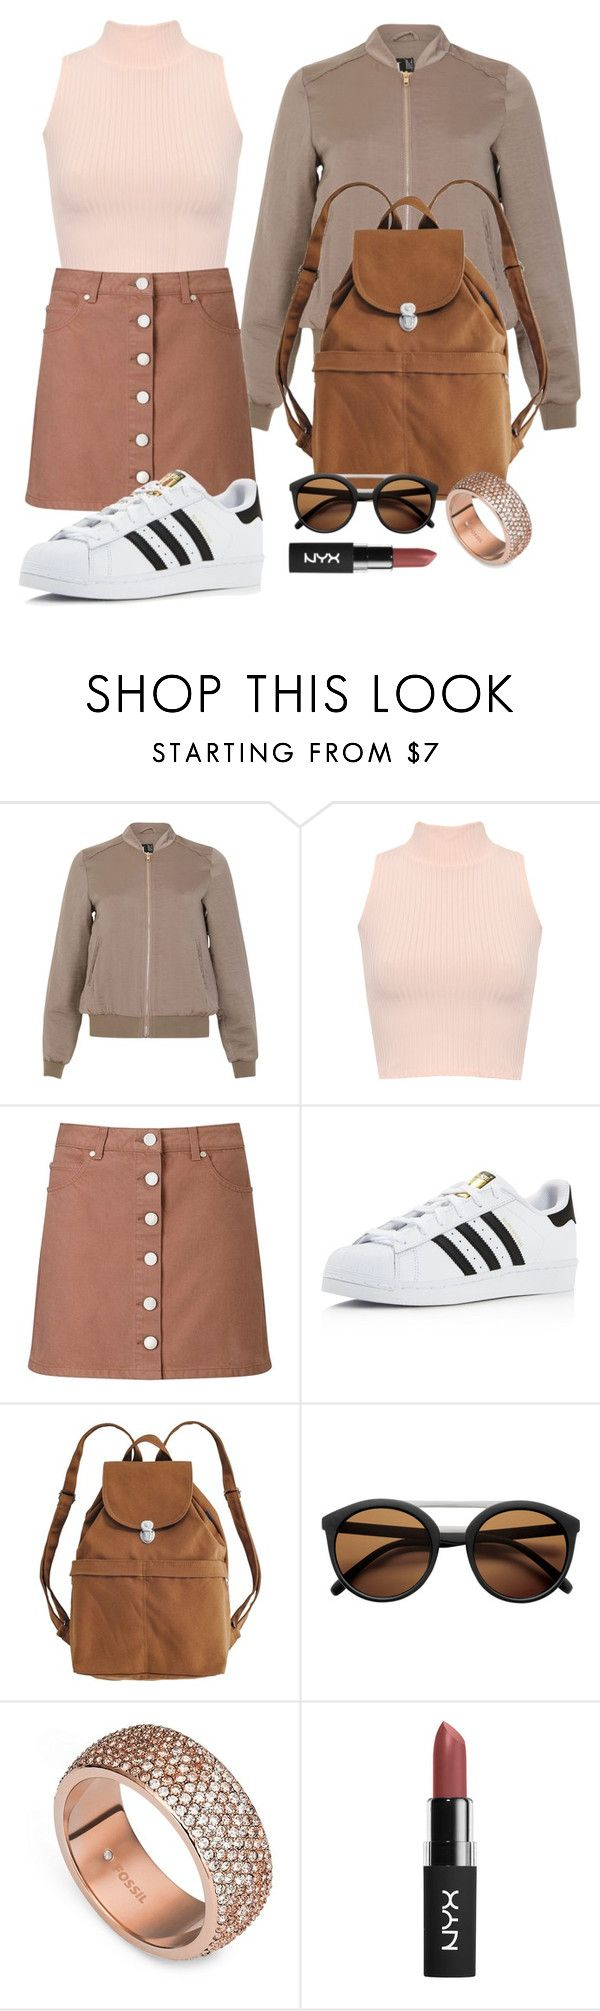 """Back To School // Sepia"" by kaymarek ❤ liked on Polyvore featuring Izabel London, WearAll, Miss Selfridge, adidas, BAGGU, FOSSIL and BackToSchool"